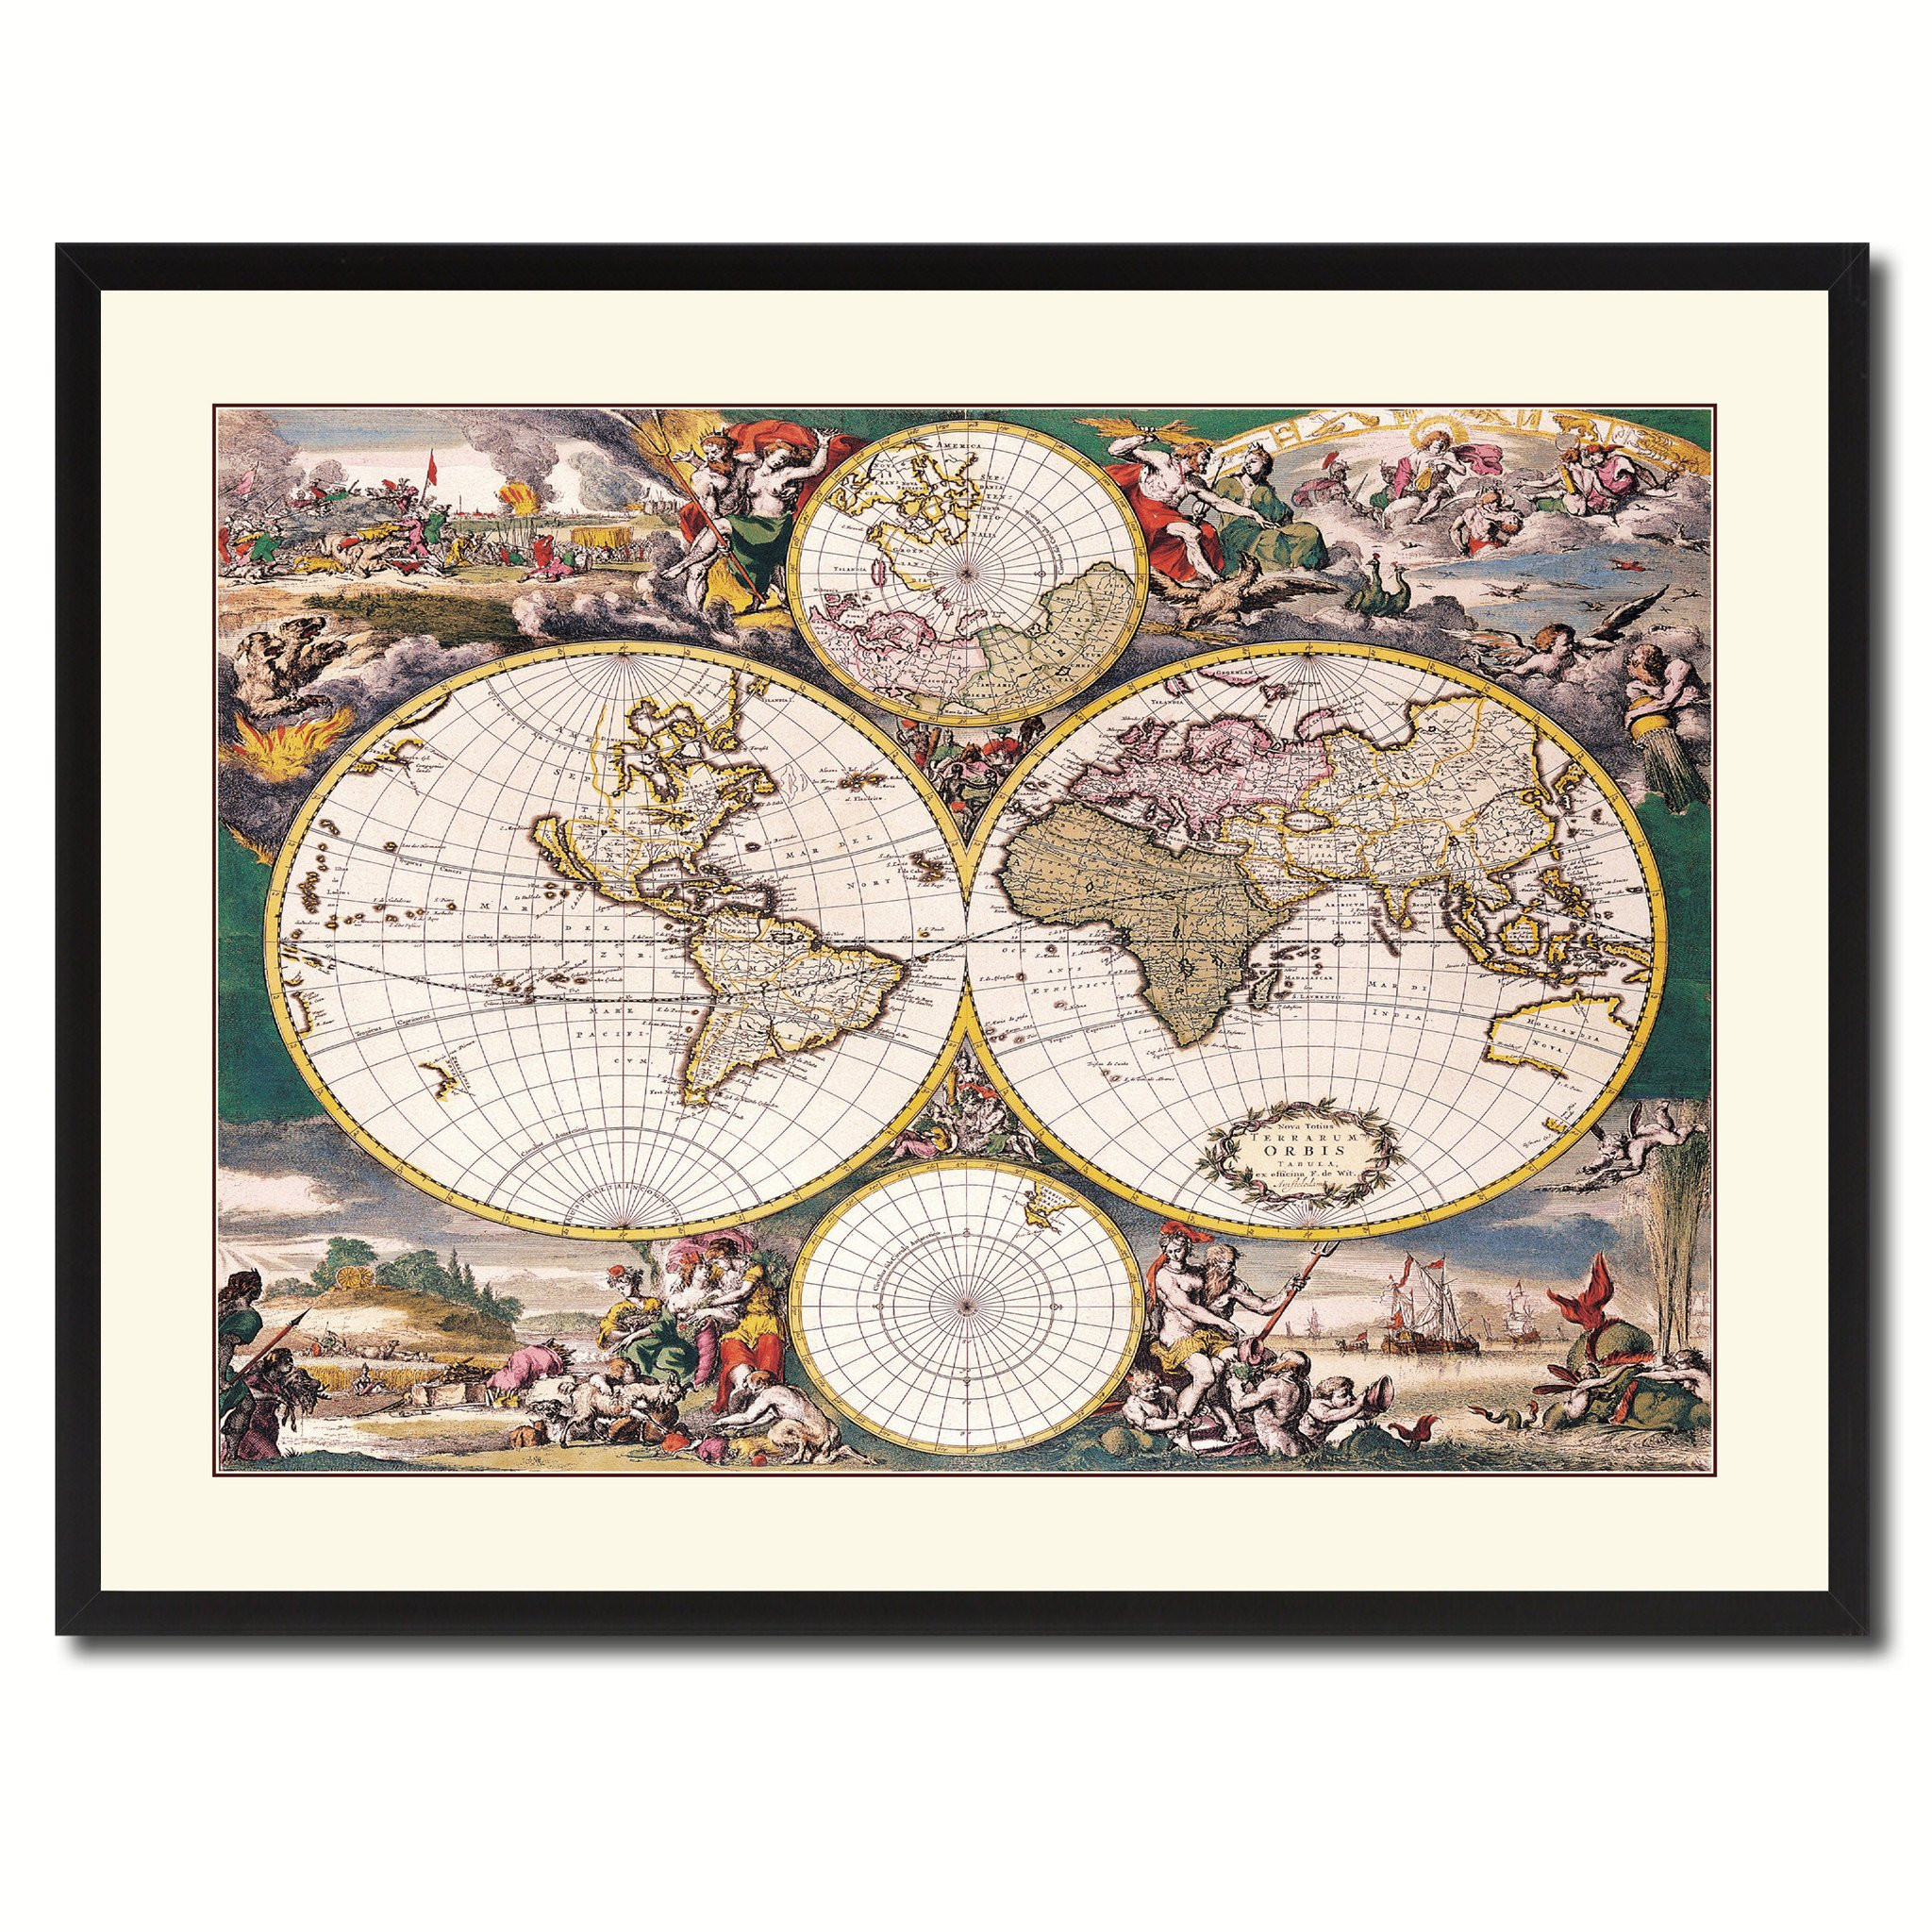 Best ideas about Map Wall Art . Save or Pin Frederick Ee Wit Vintage Antique Map Wall Art Home Decor Now.